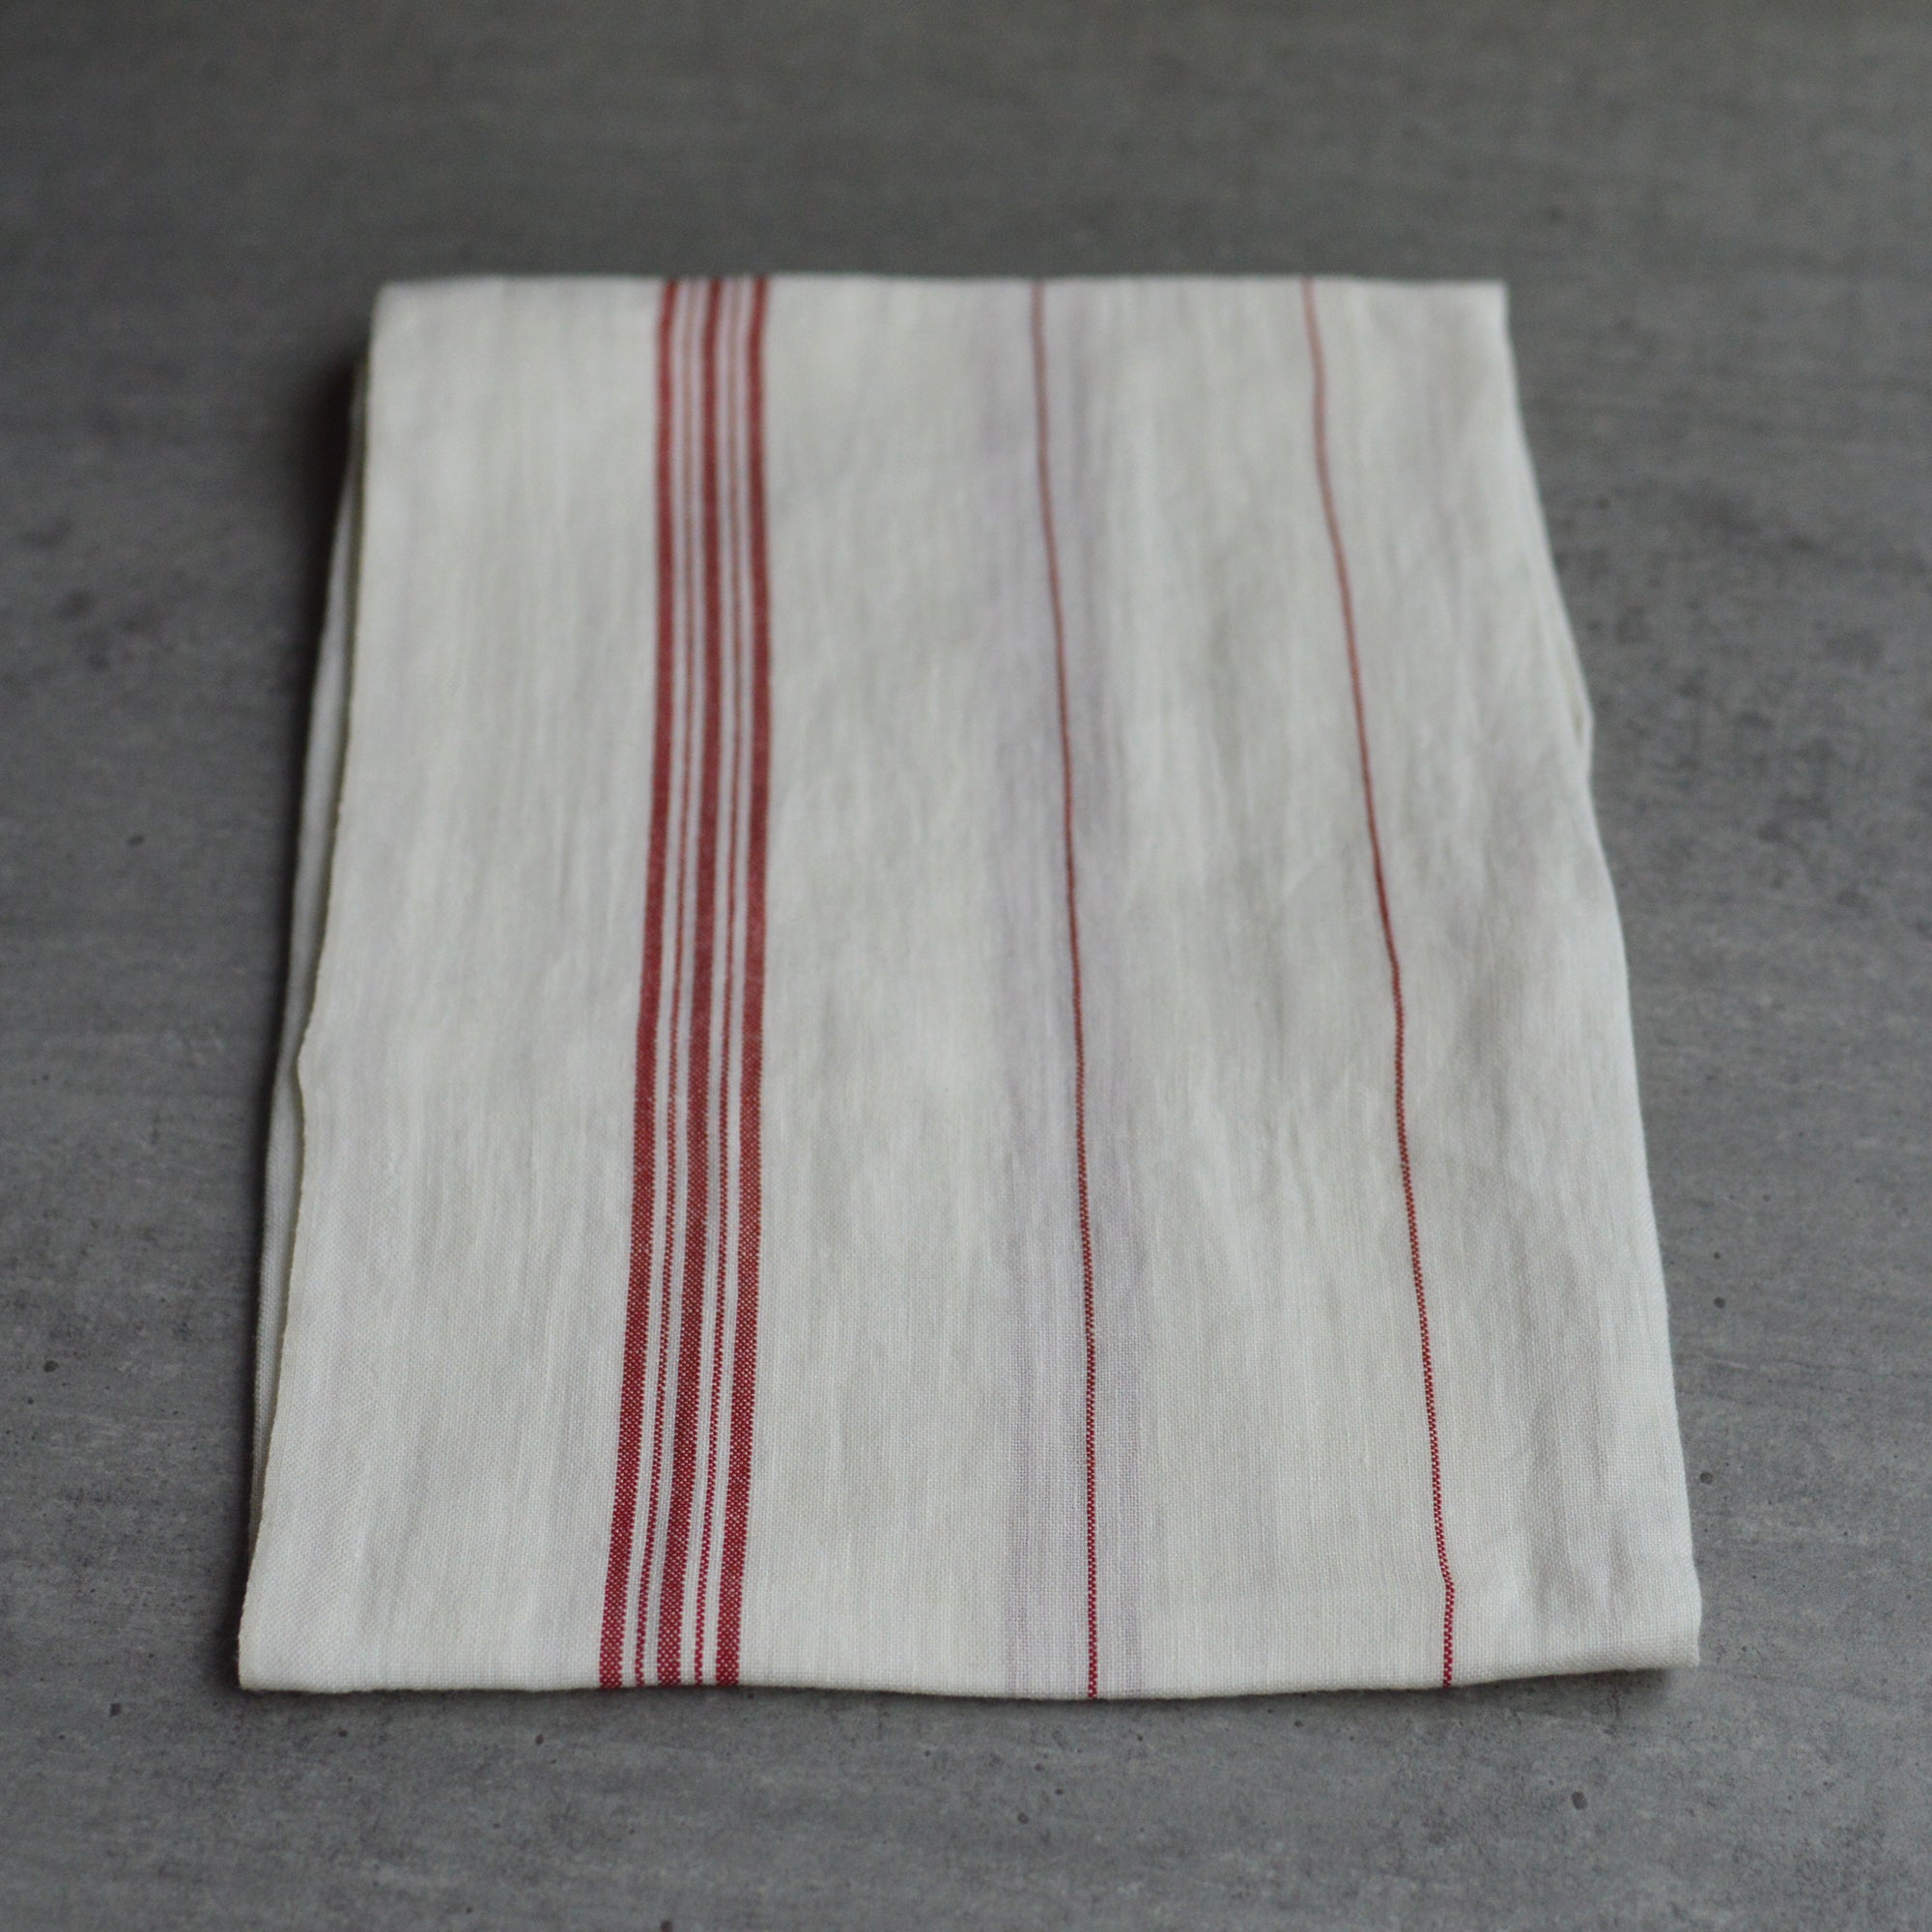 French 100% Linen White with Red Stripes Tea Towel by Charvet Editions